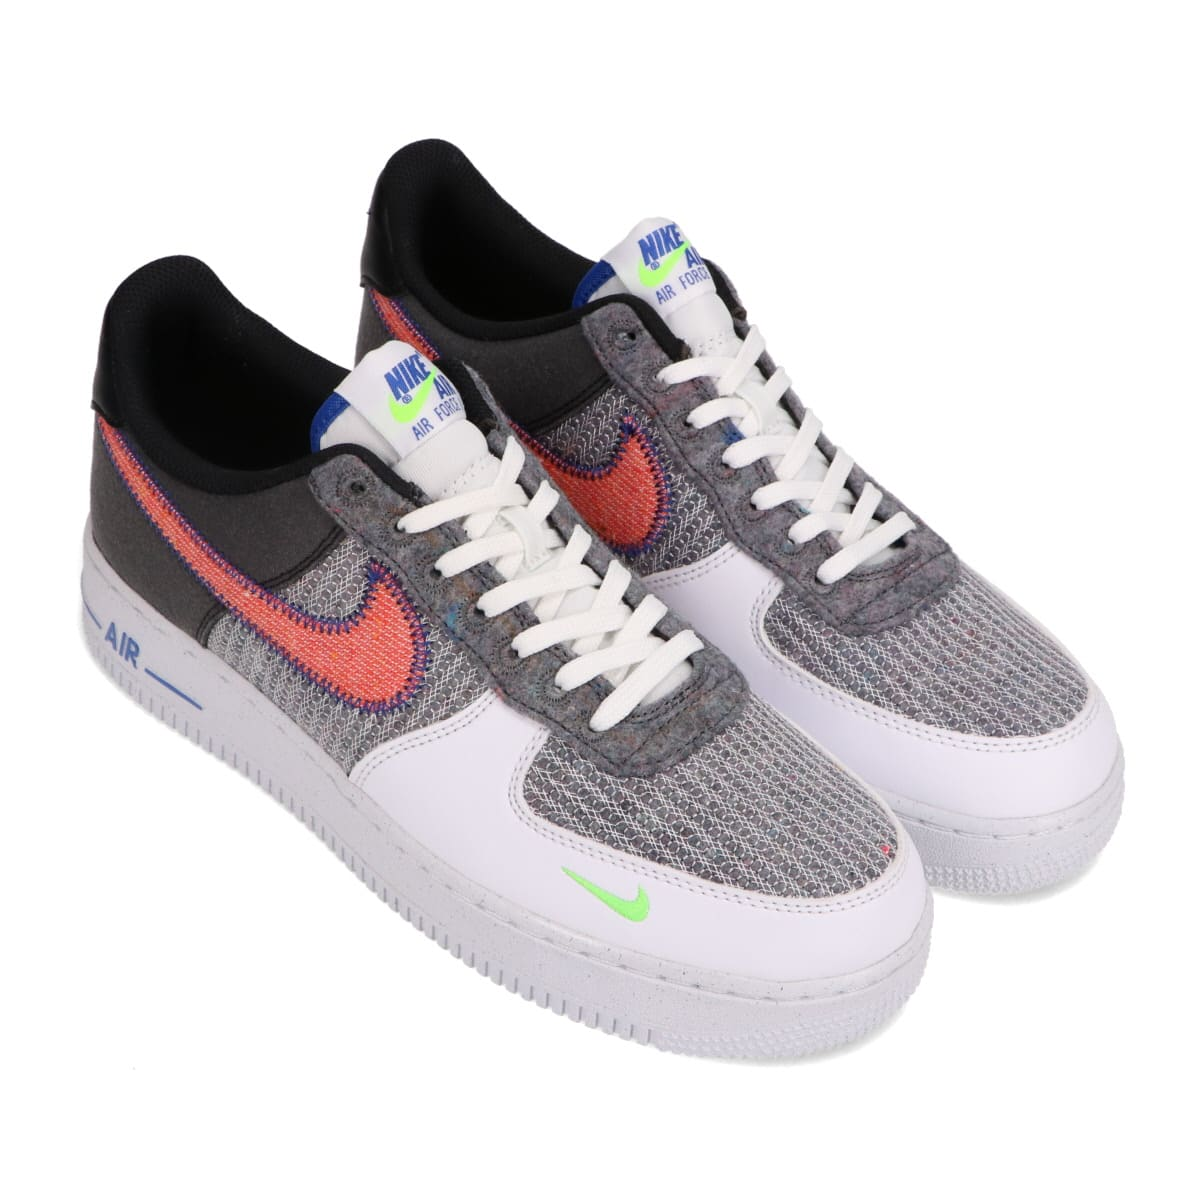 NIKE AIR FORCE 1 '07 WHITE/SPORT RED-GREY-ELECTRIC GREEN 20HO-I_photo_large